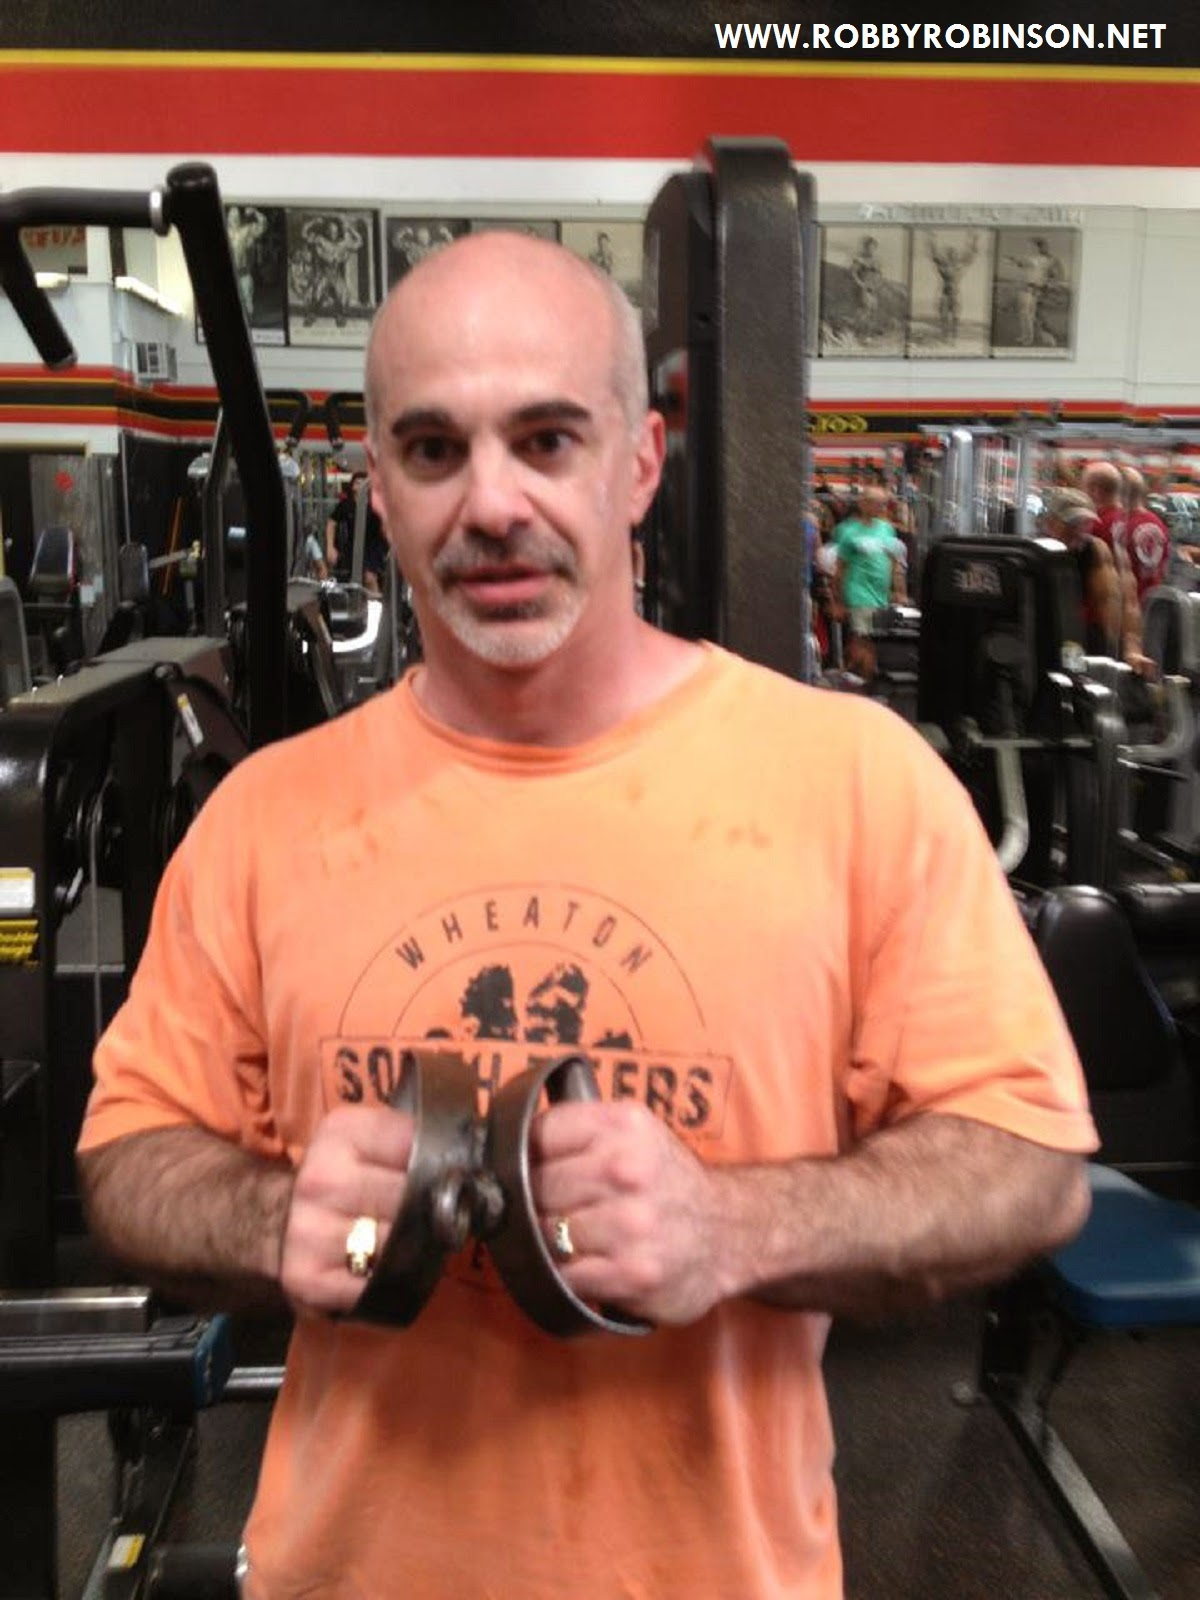 Gary Casaccio holding legendary T-row-Bar from the original Gold's gym on Pacific Ave, Venice BUILT- Instructional Double DVD ● www.robbyrobinson.net/dvd_built.php ●